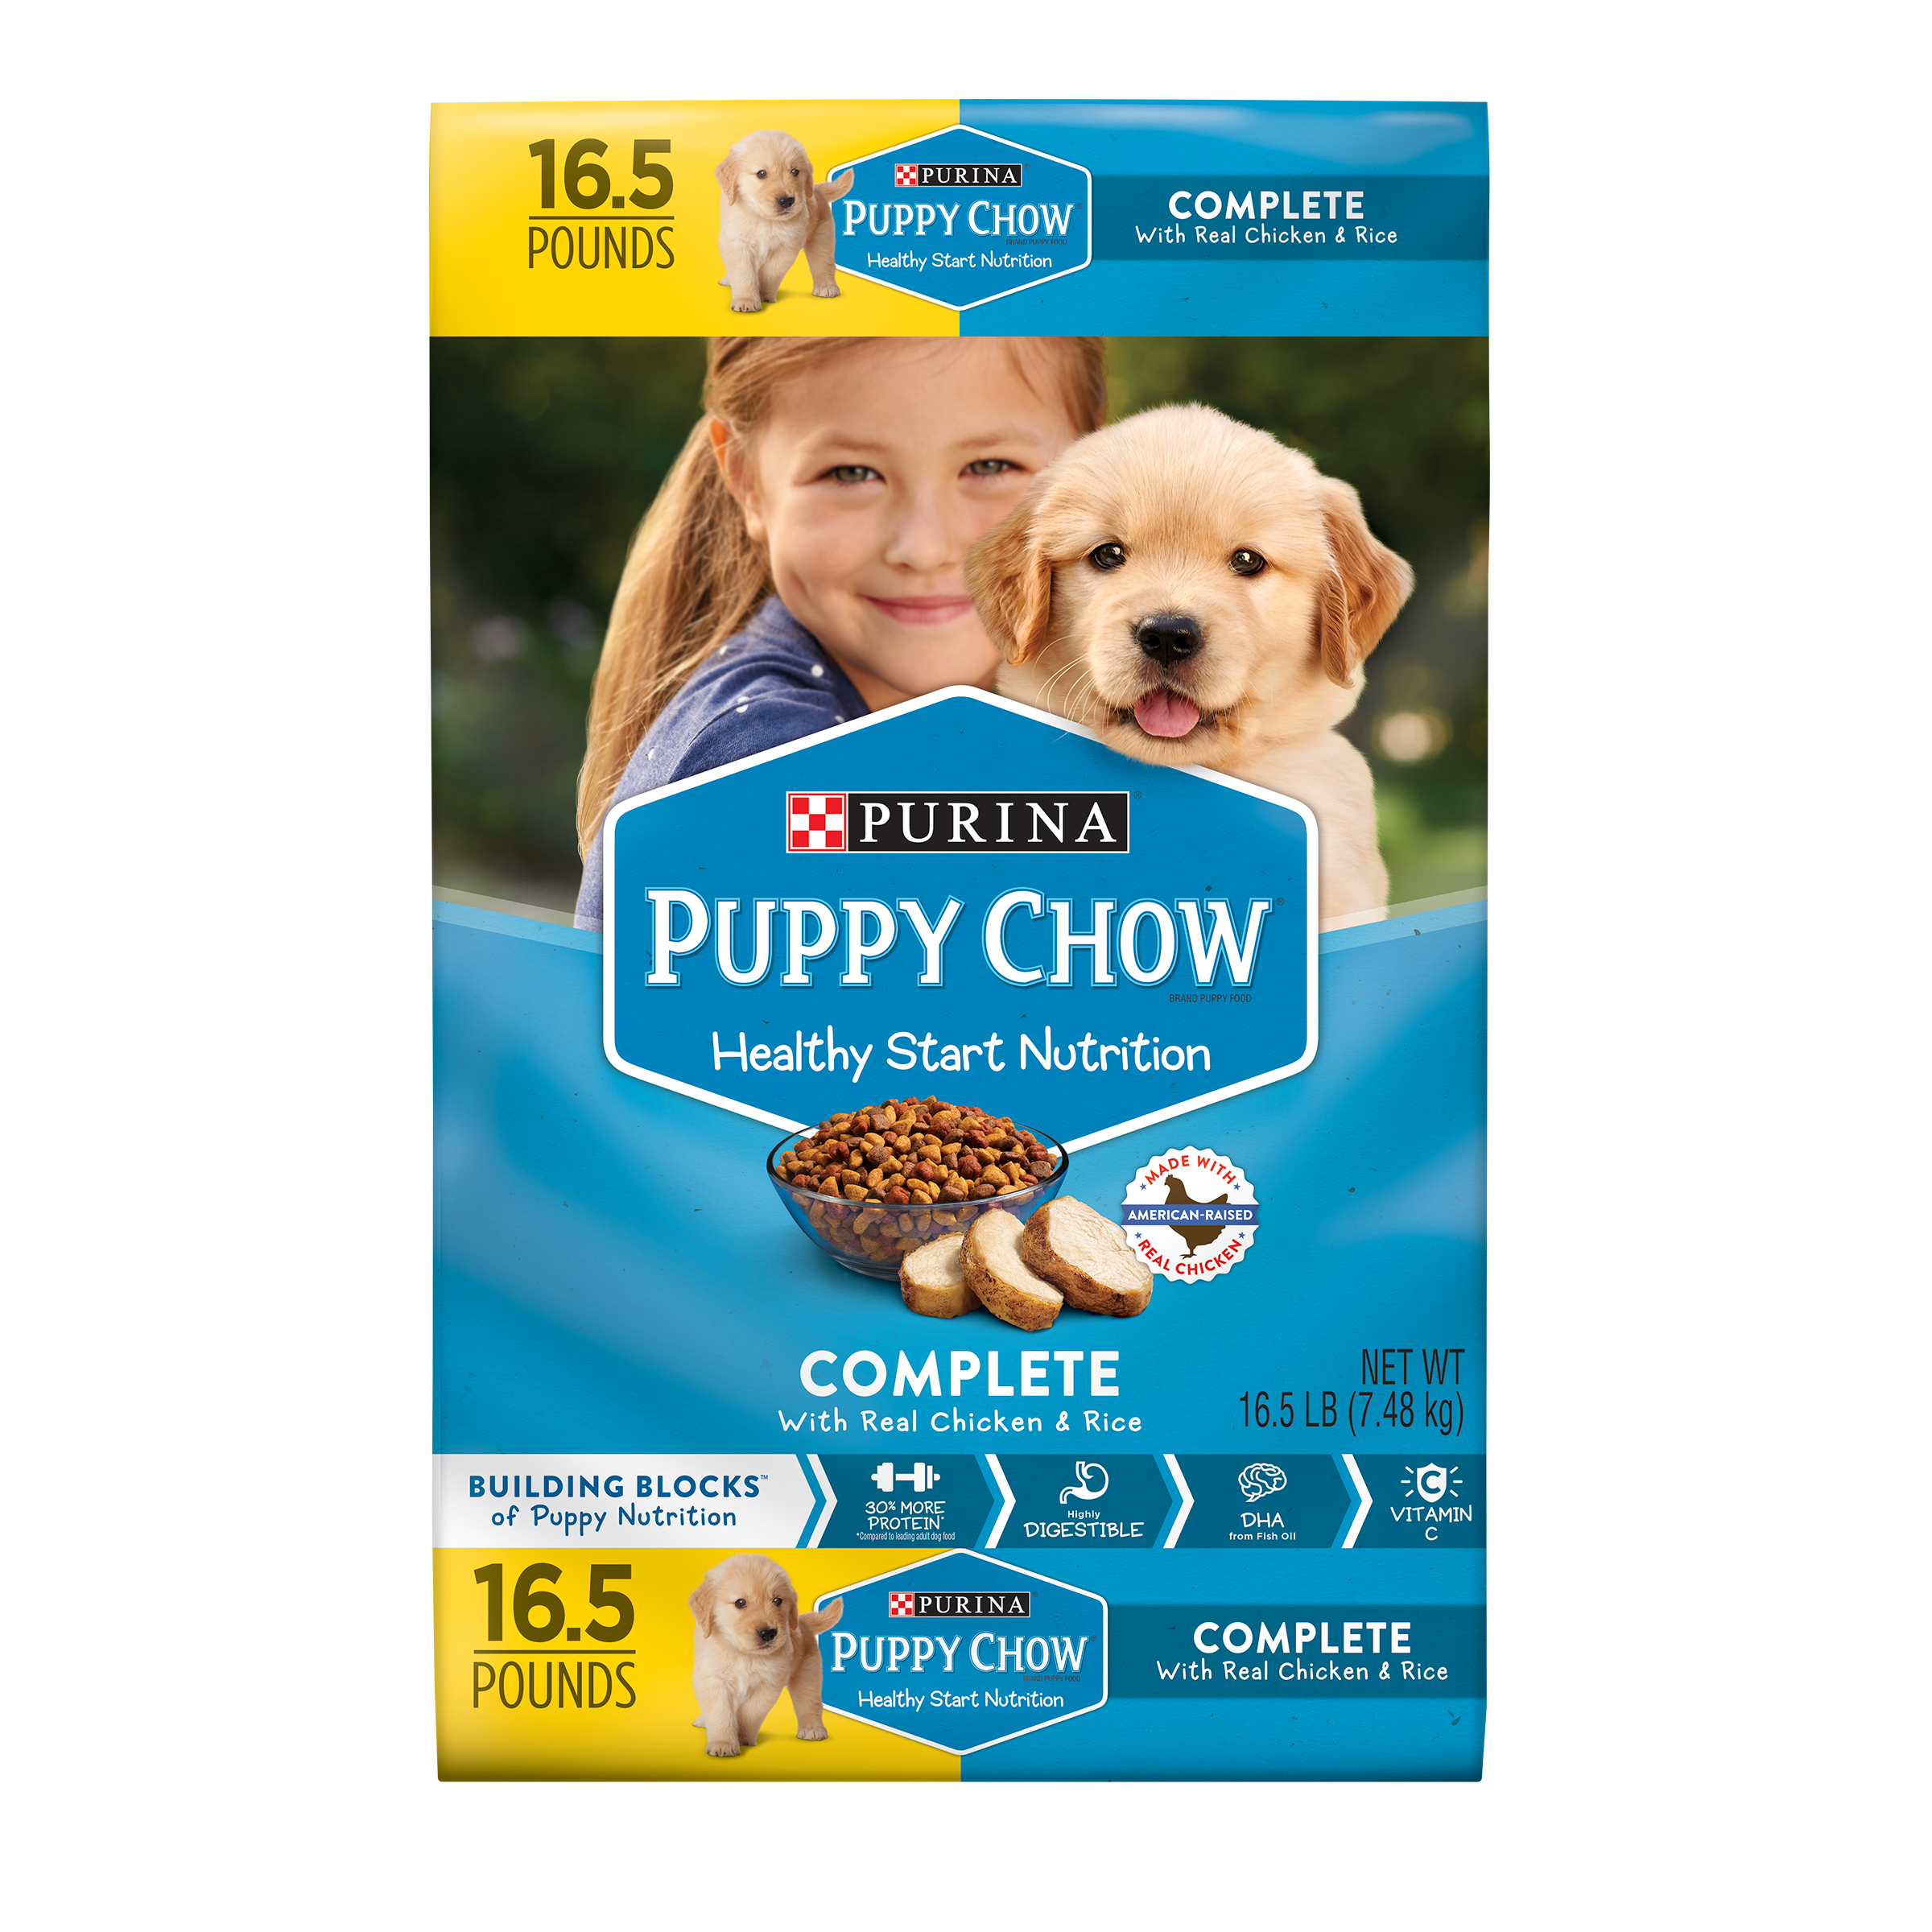 Puppy Chow Complete With Real Chicken Dry Puppy Food - 16.5 lb. Bag